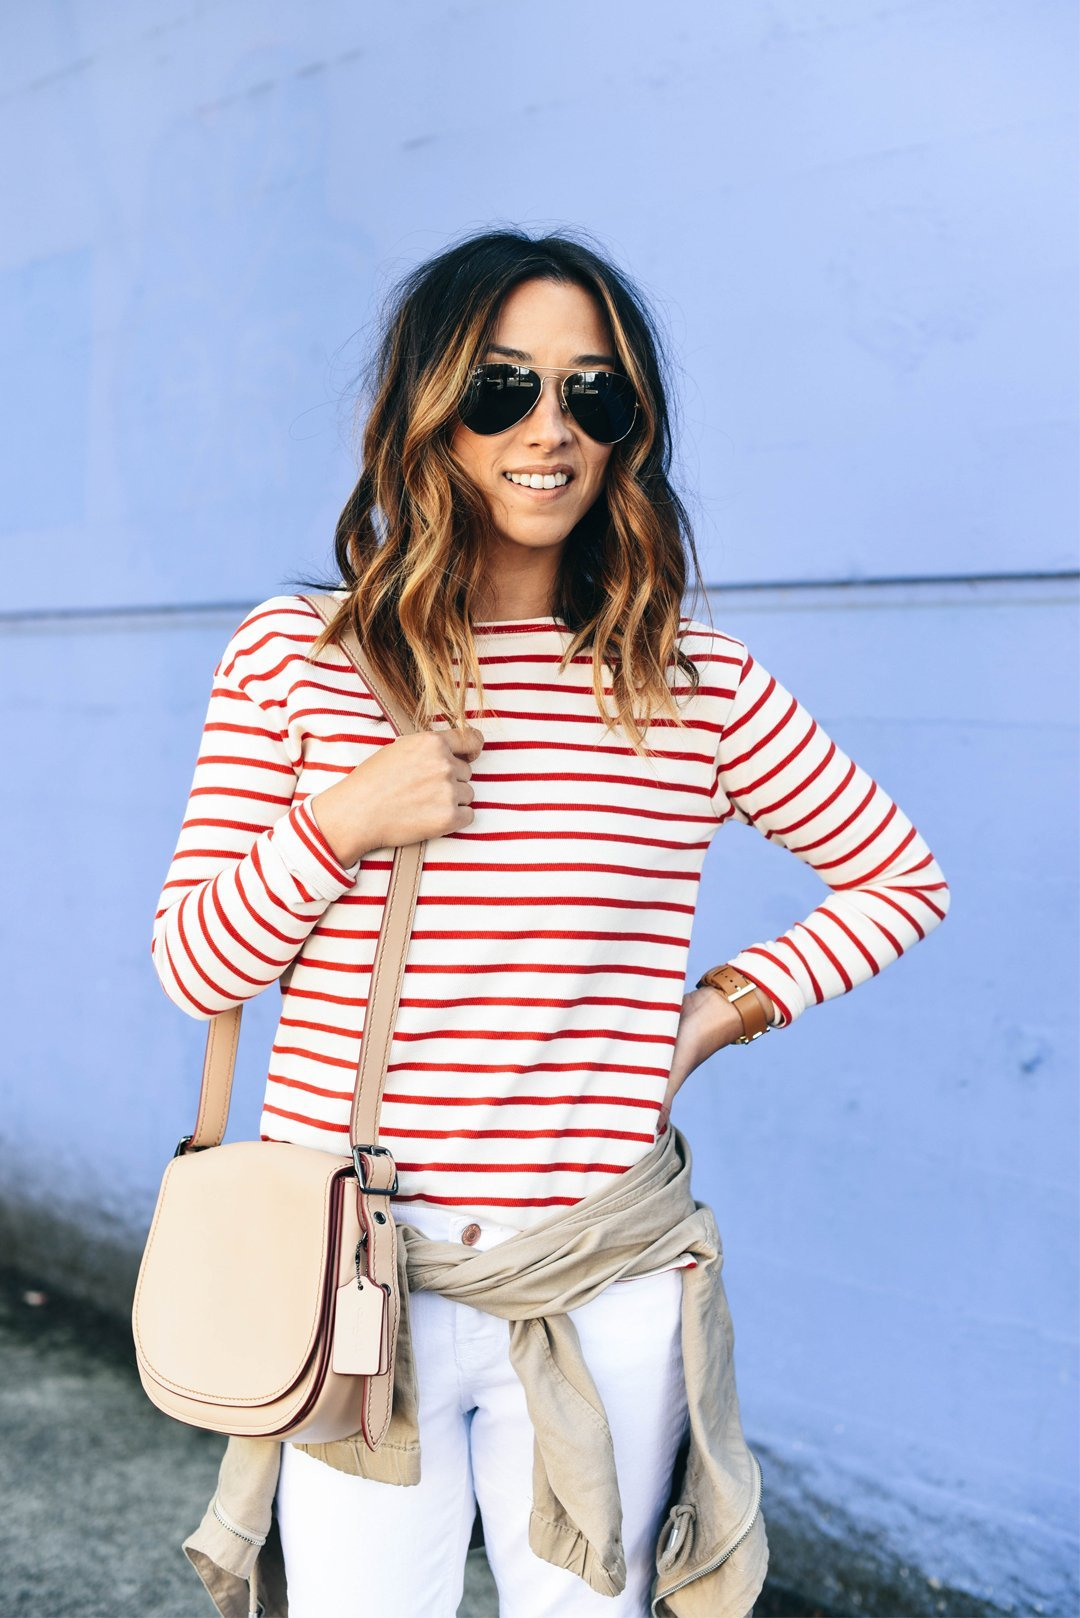 crystalin-marie-wearing-old-navy-red-striped-tee